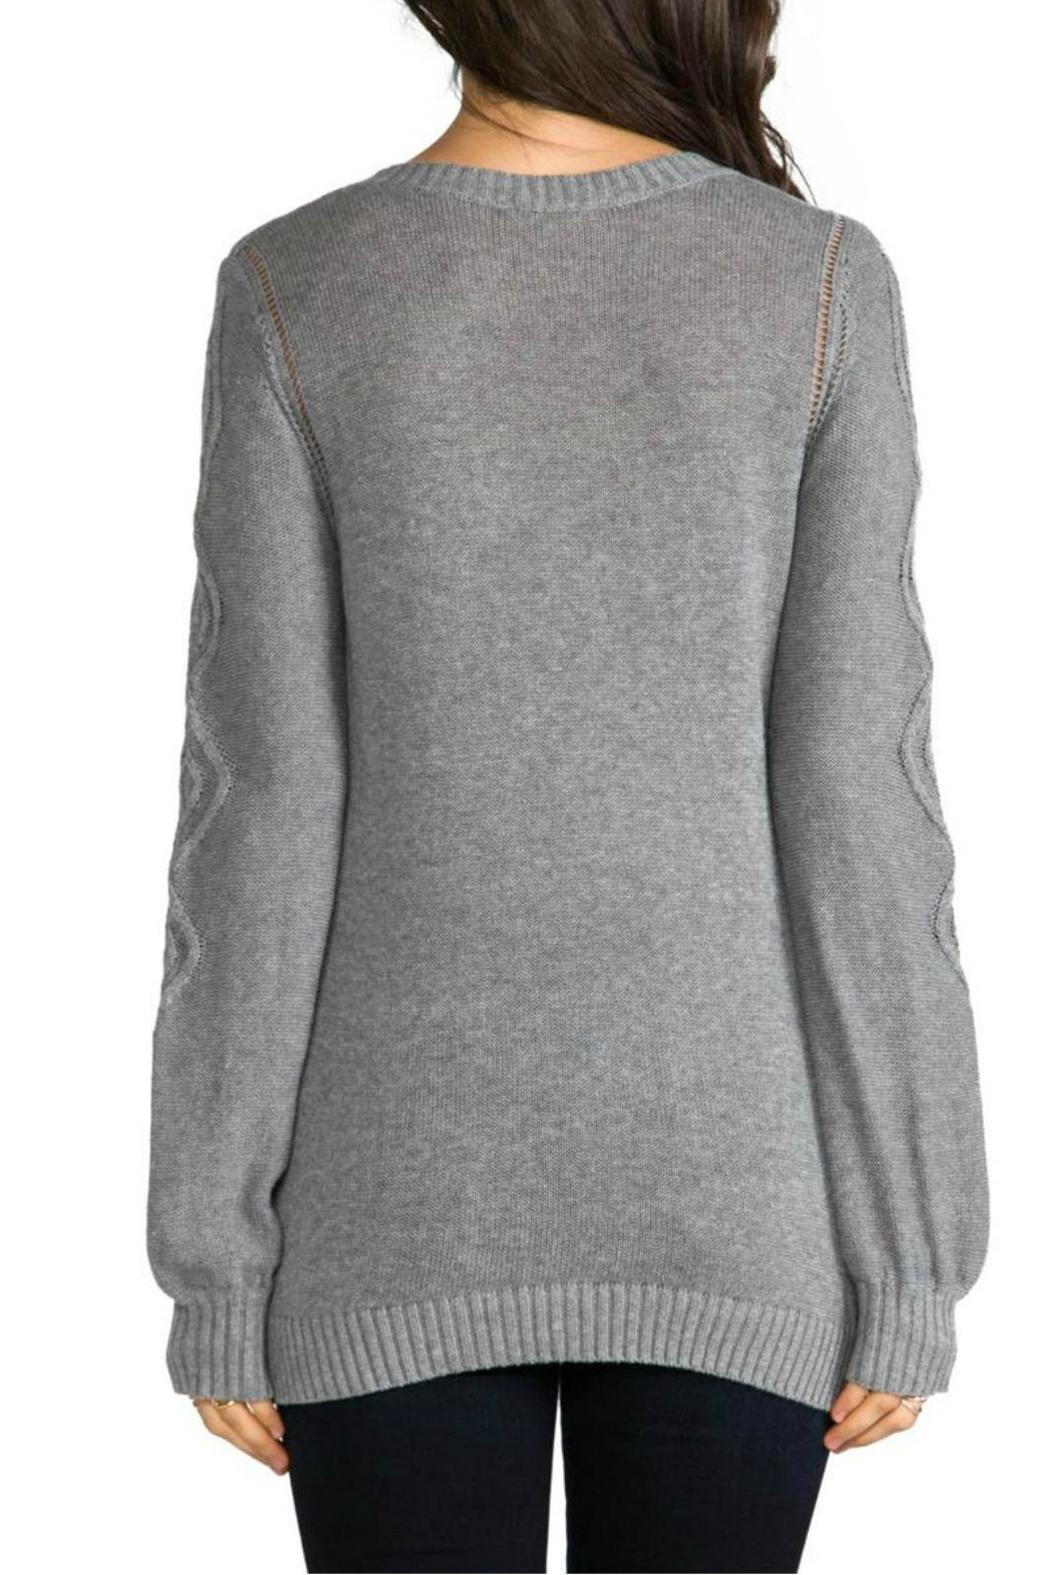 LaMade V Neck Cable Knit Sweater from Washington by